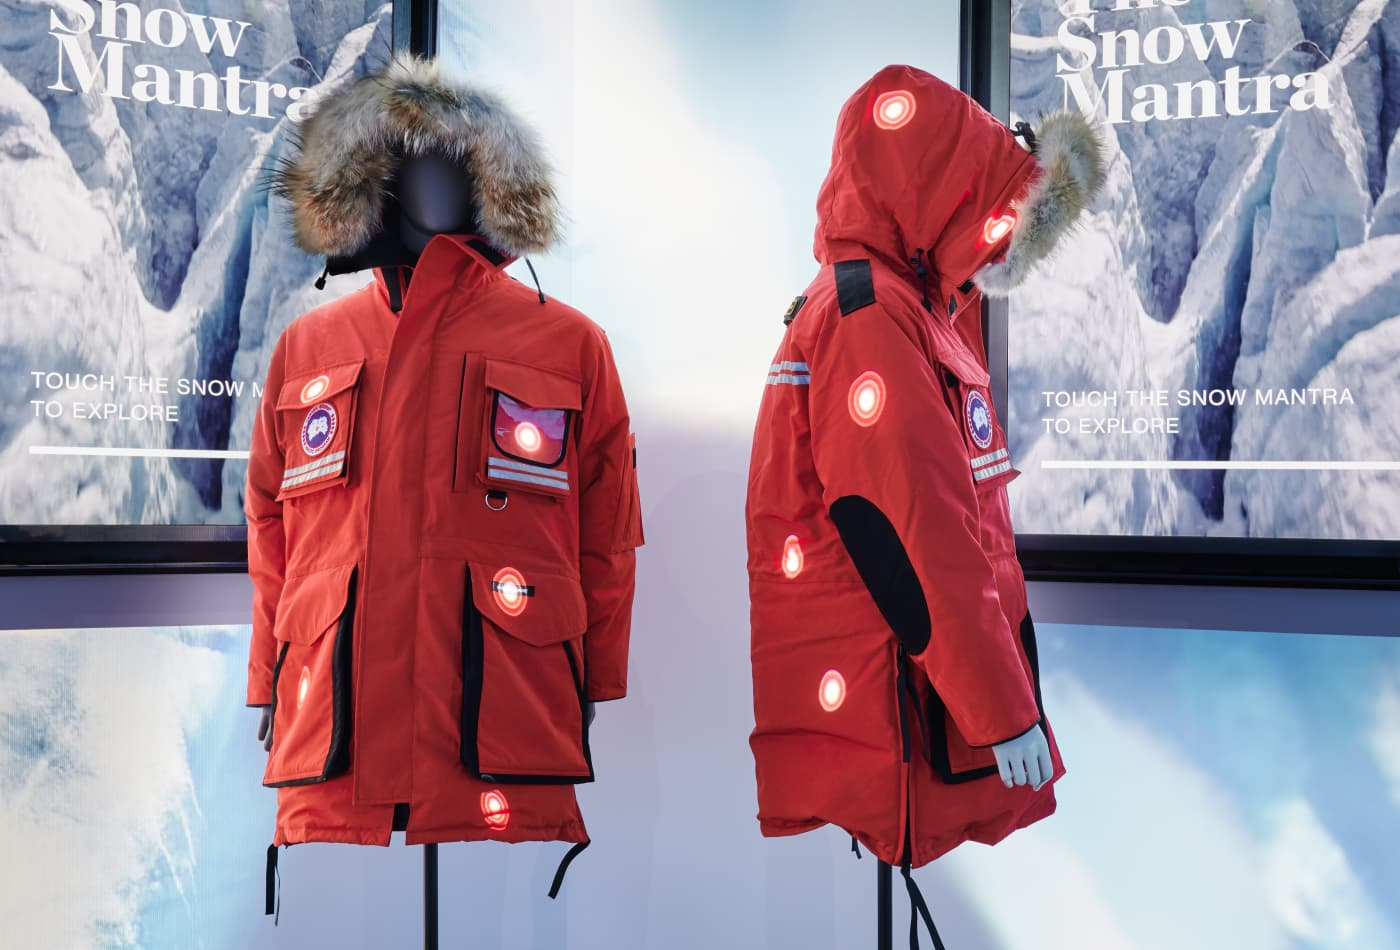 Canada Goose CEO says experiential store offers a 'break from the insanity of the world today'